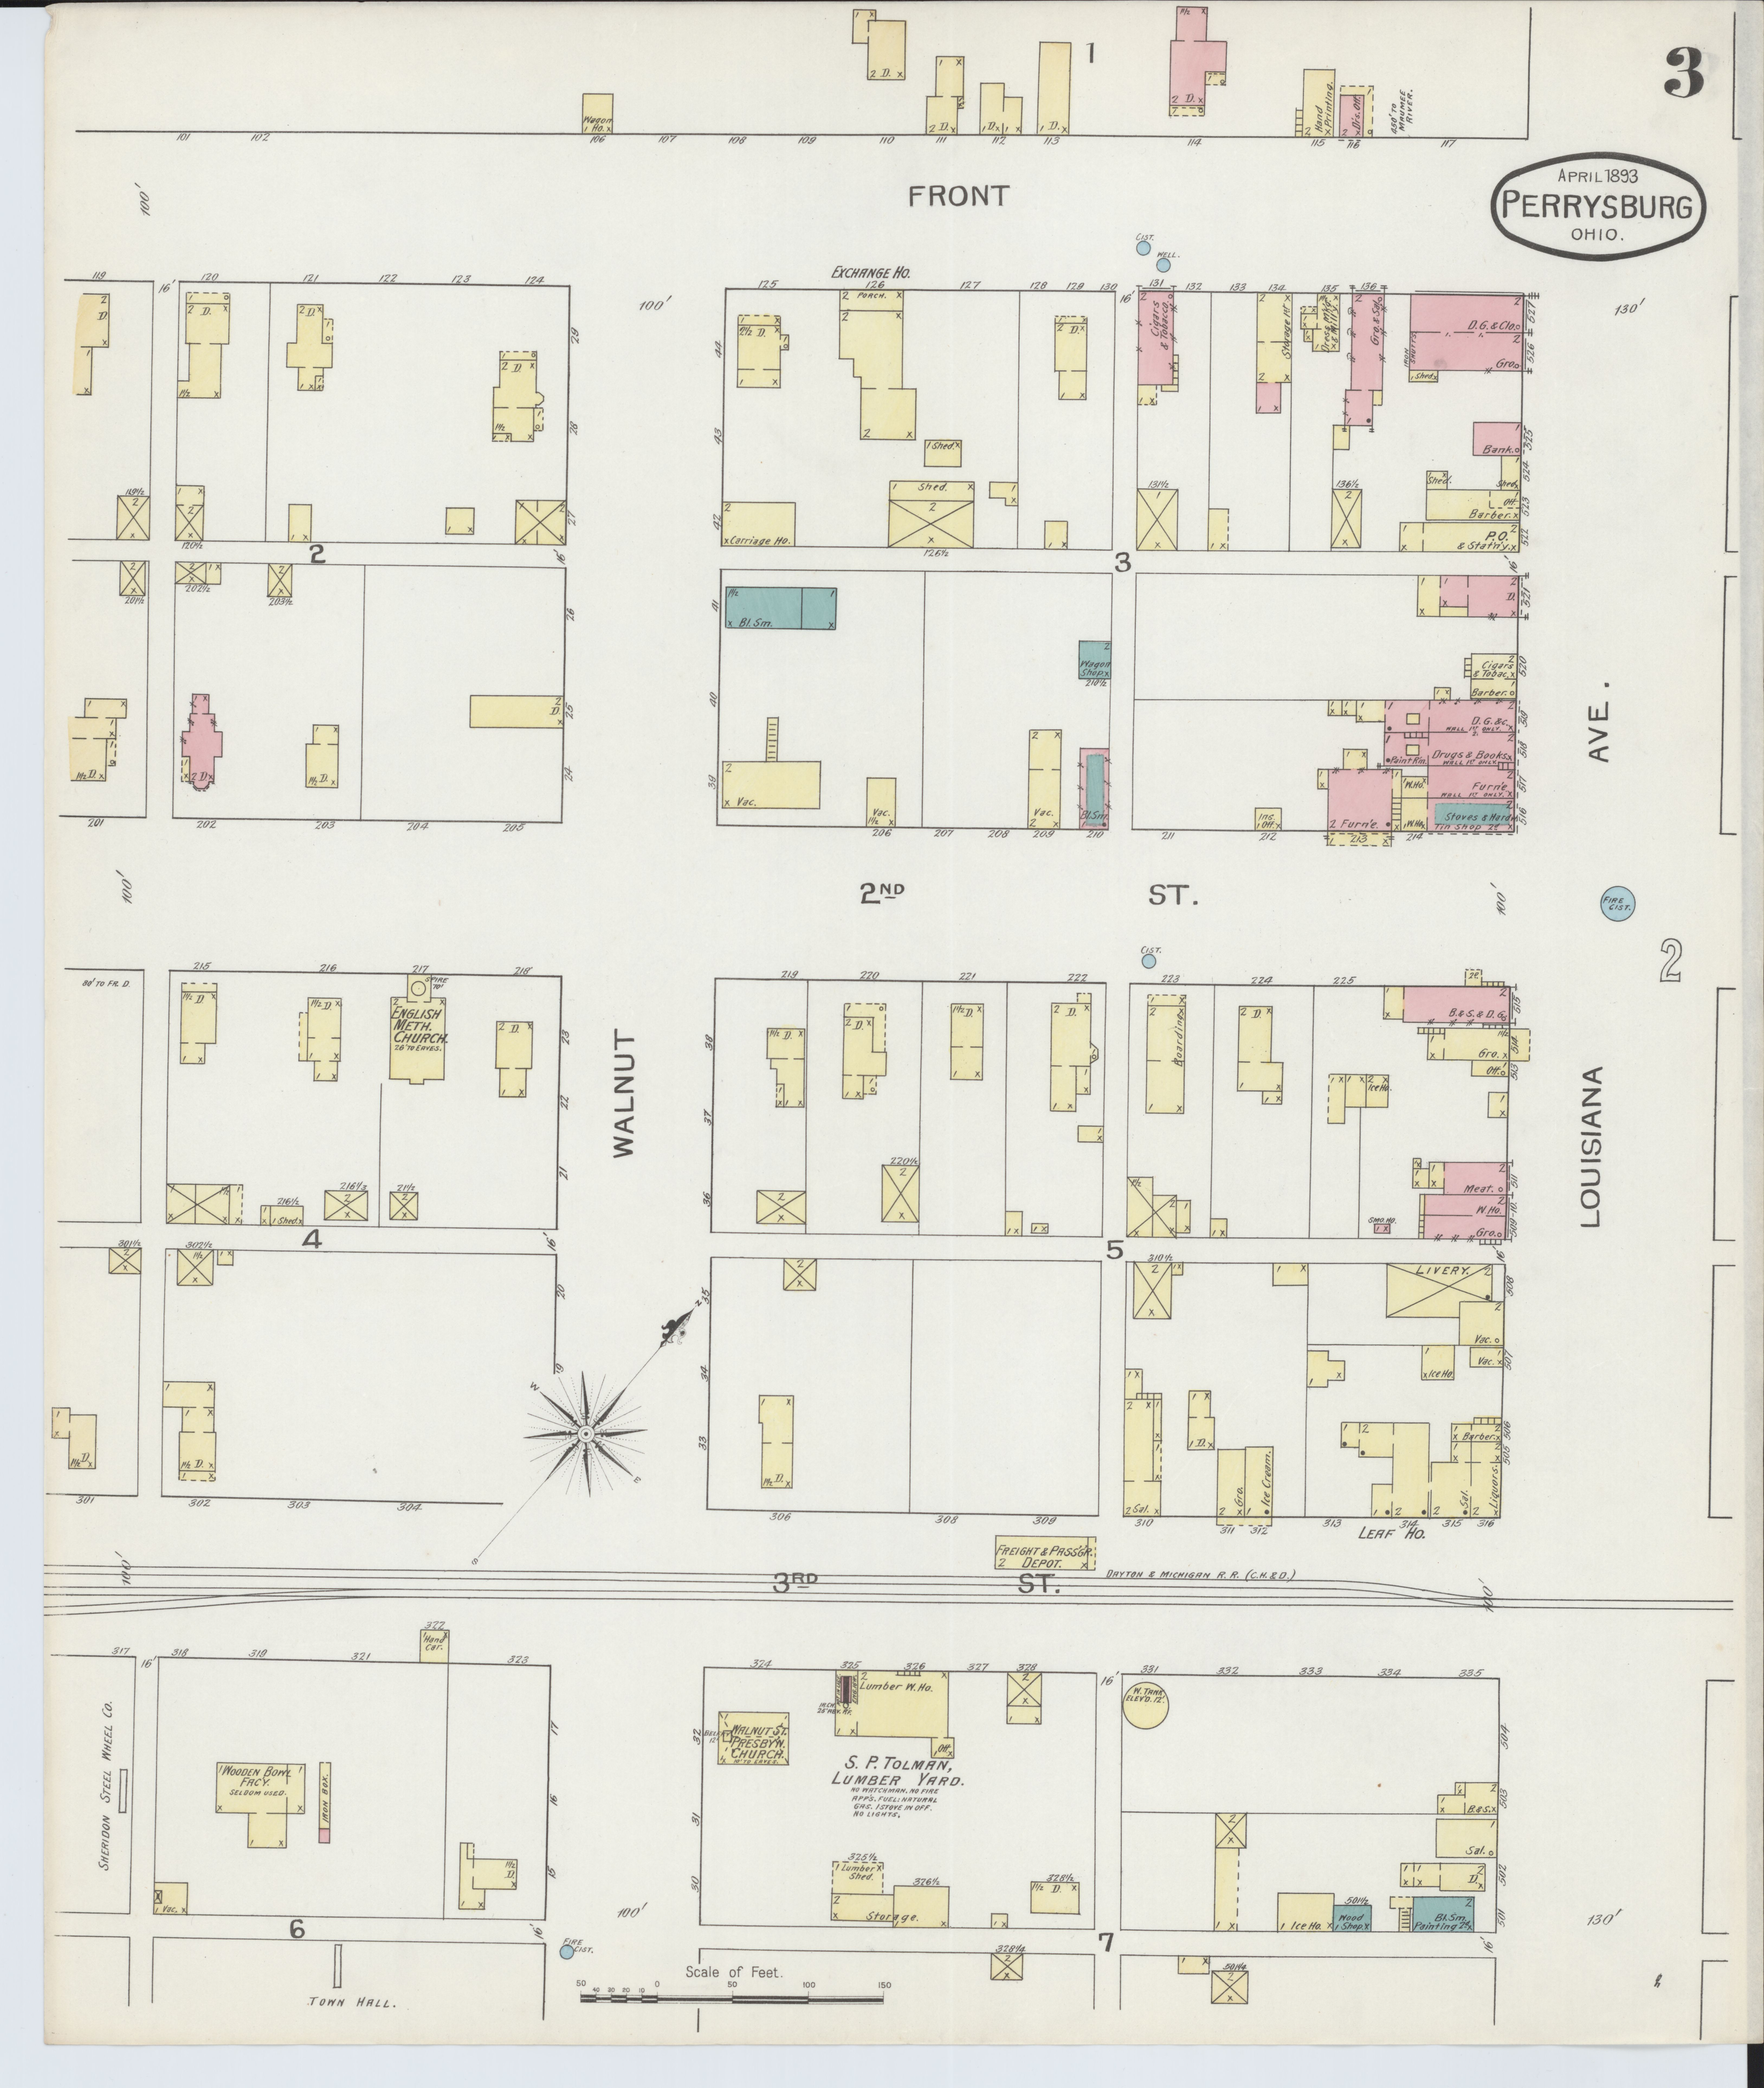 File:Sanborn Fire Insurance Map from Perrysburg, Wood County